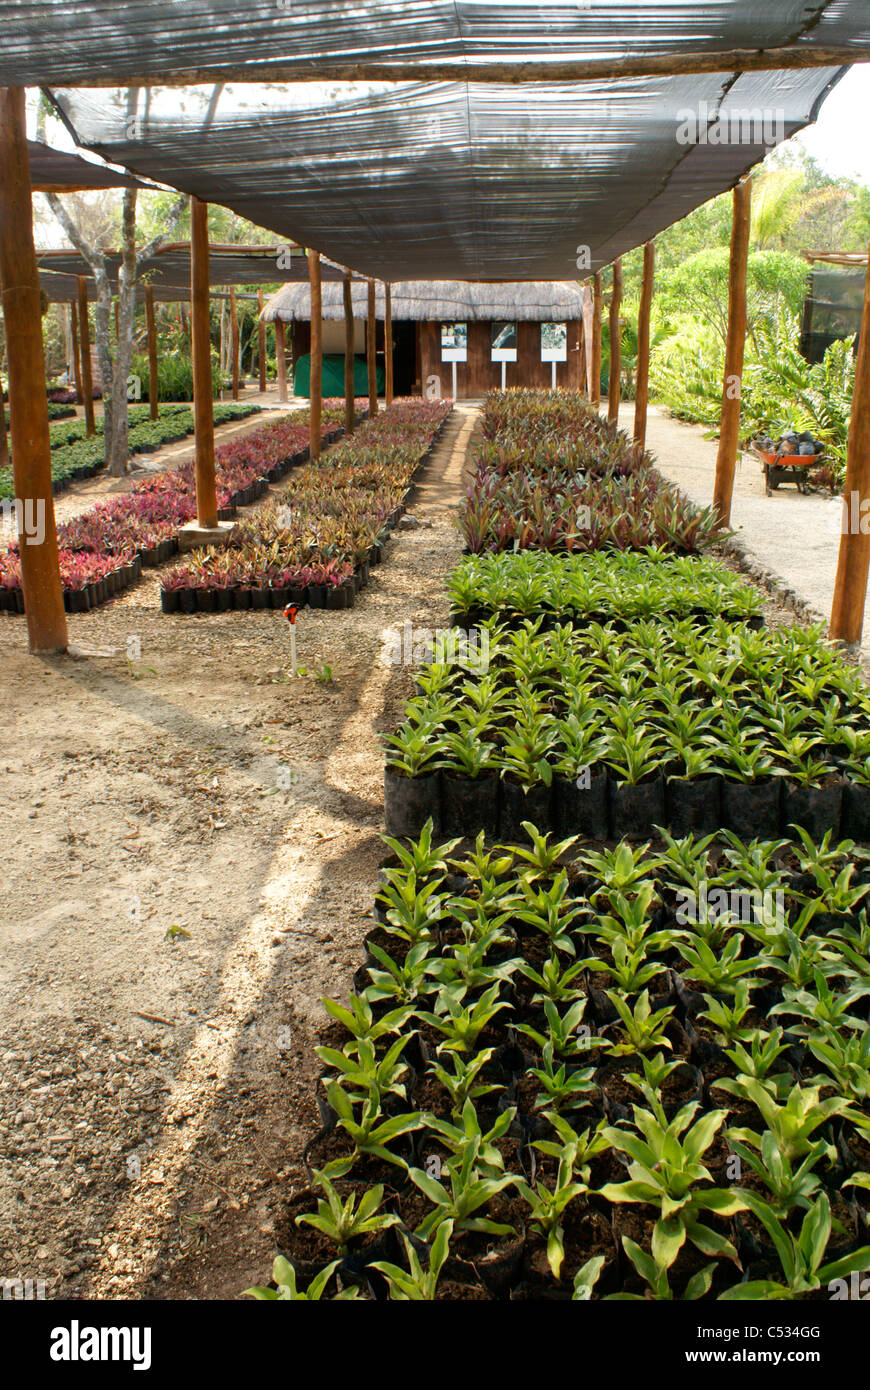 Palm tree and red mangrove seedlings at a plant nursery, Hacienda ...